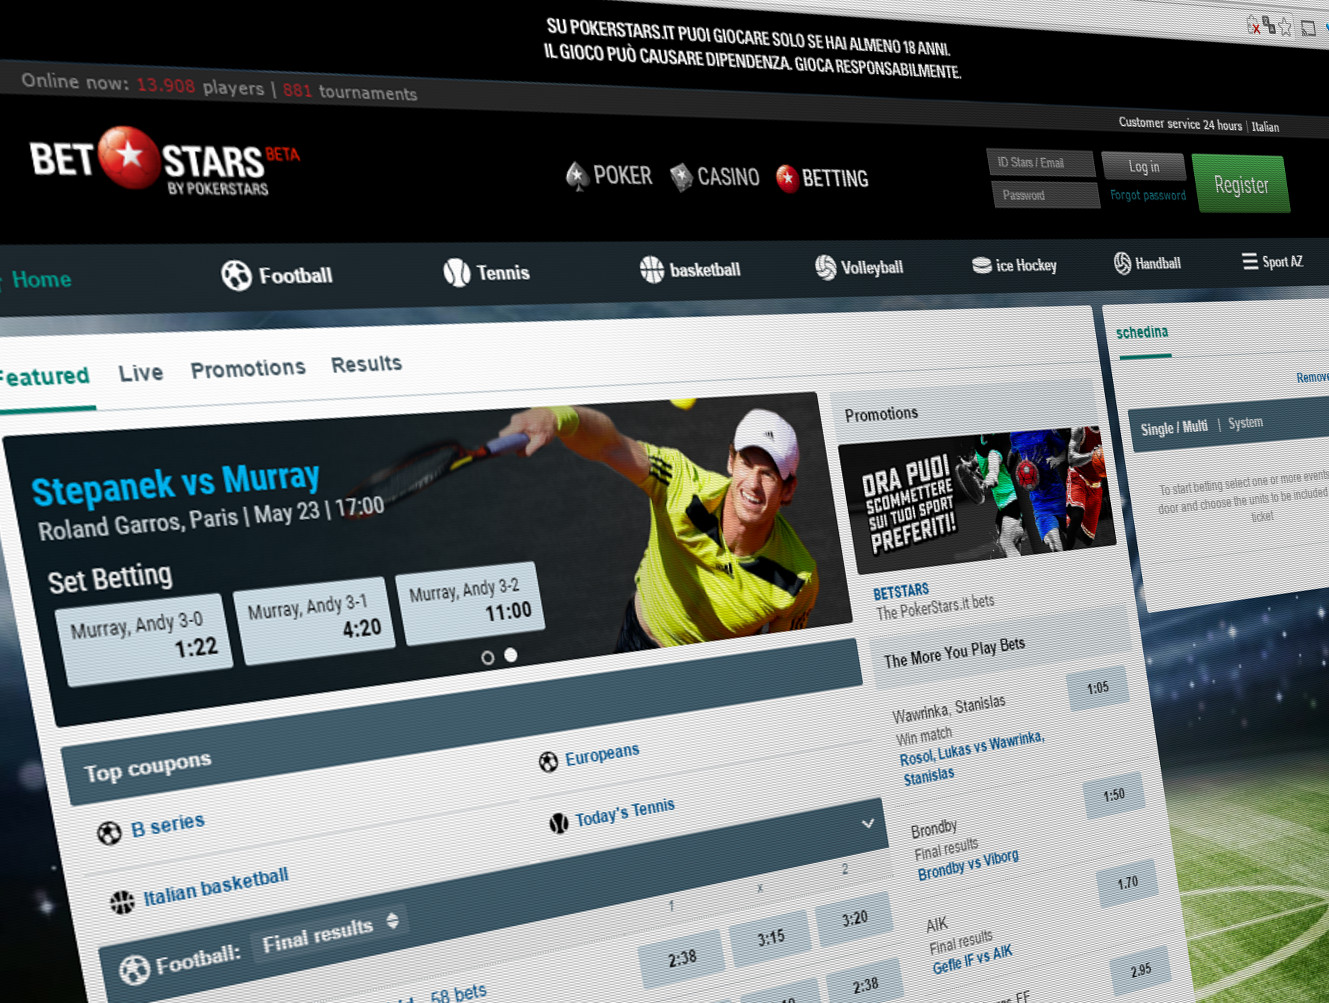 Pokerstars sports betting betting nba preseason